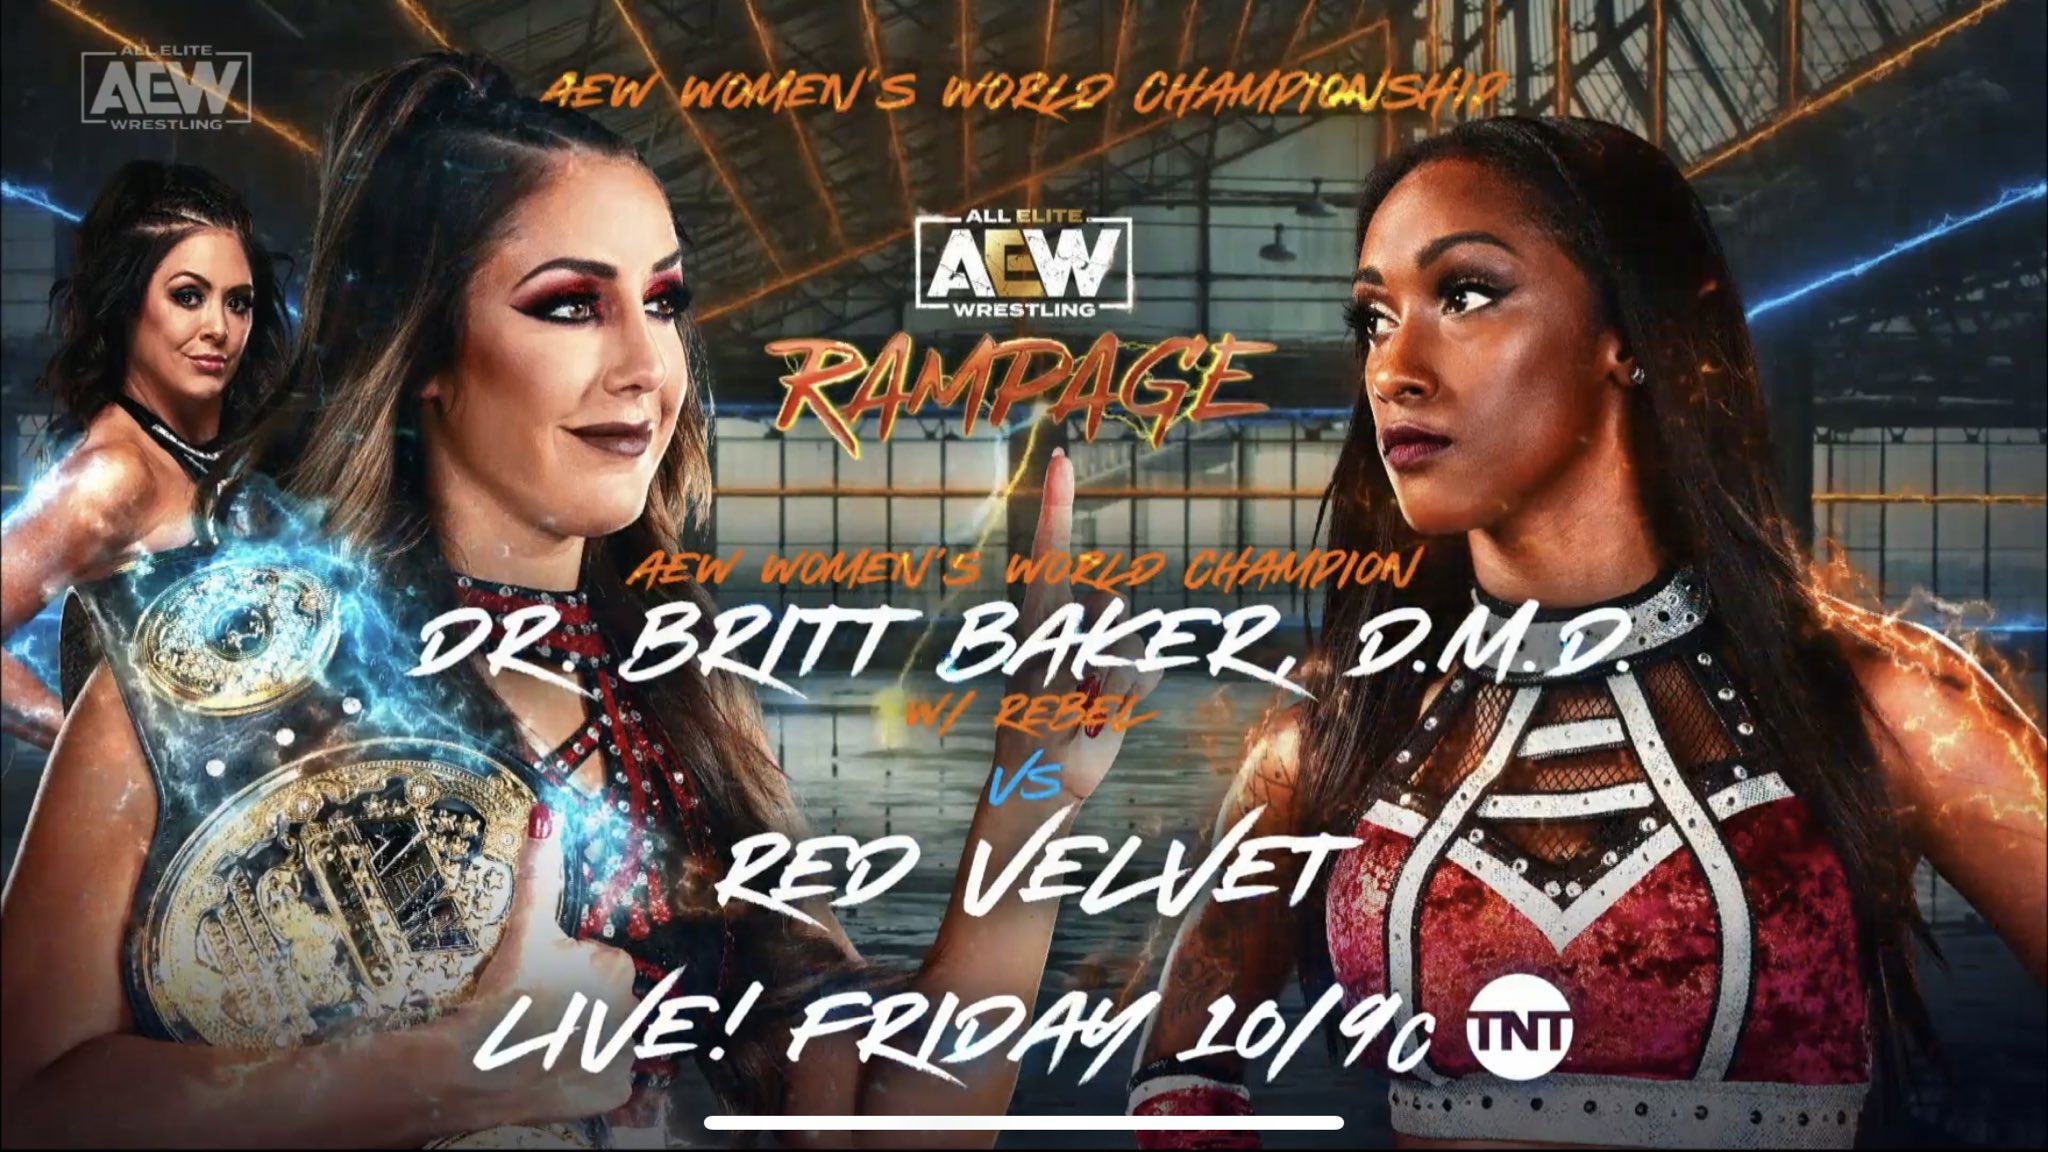 AEW Rampage for 8/13/21 https://pbs.twimg.com/media/E8luPlsXEAUHpkN?format=jpg&name=large